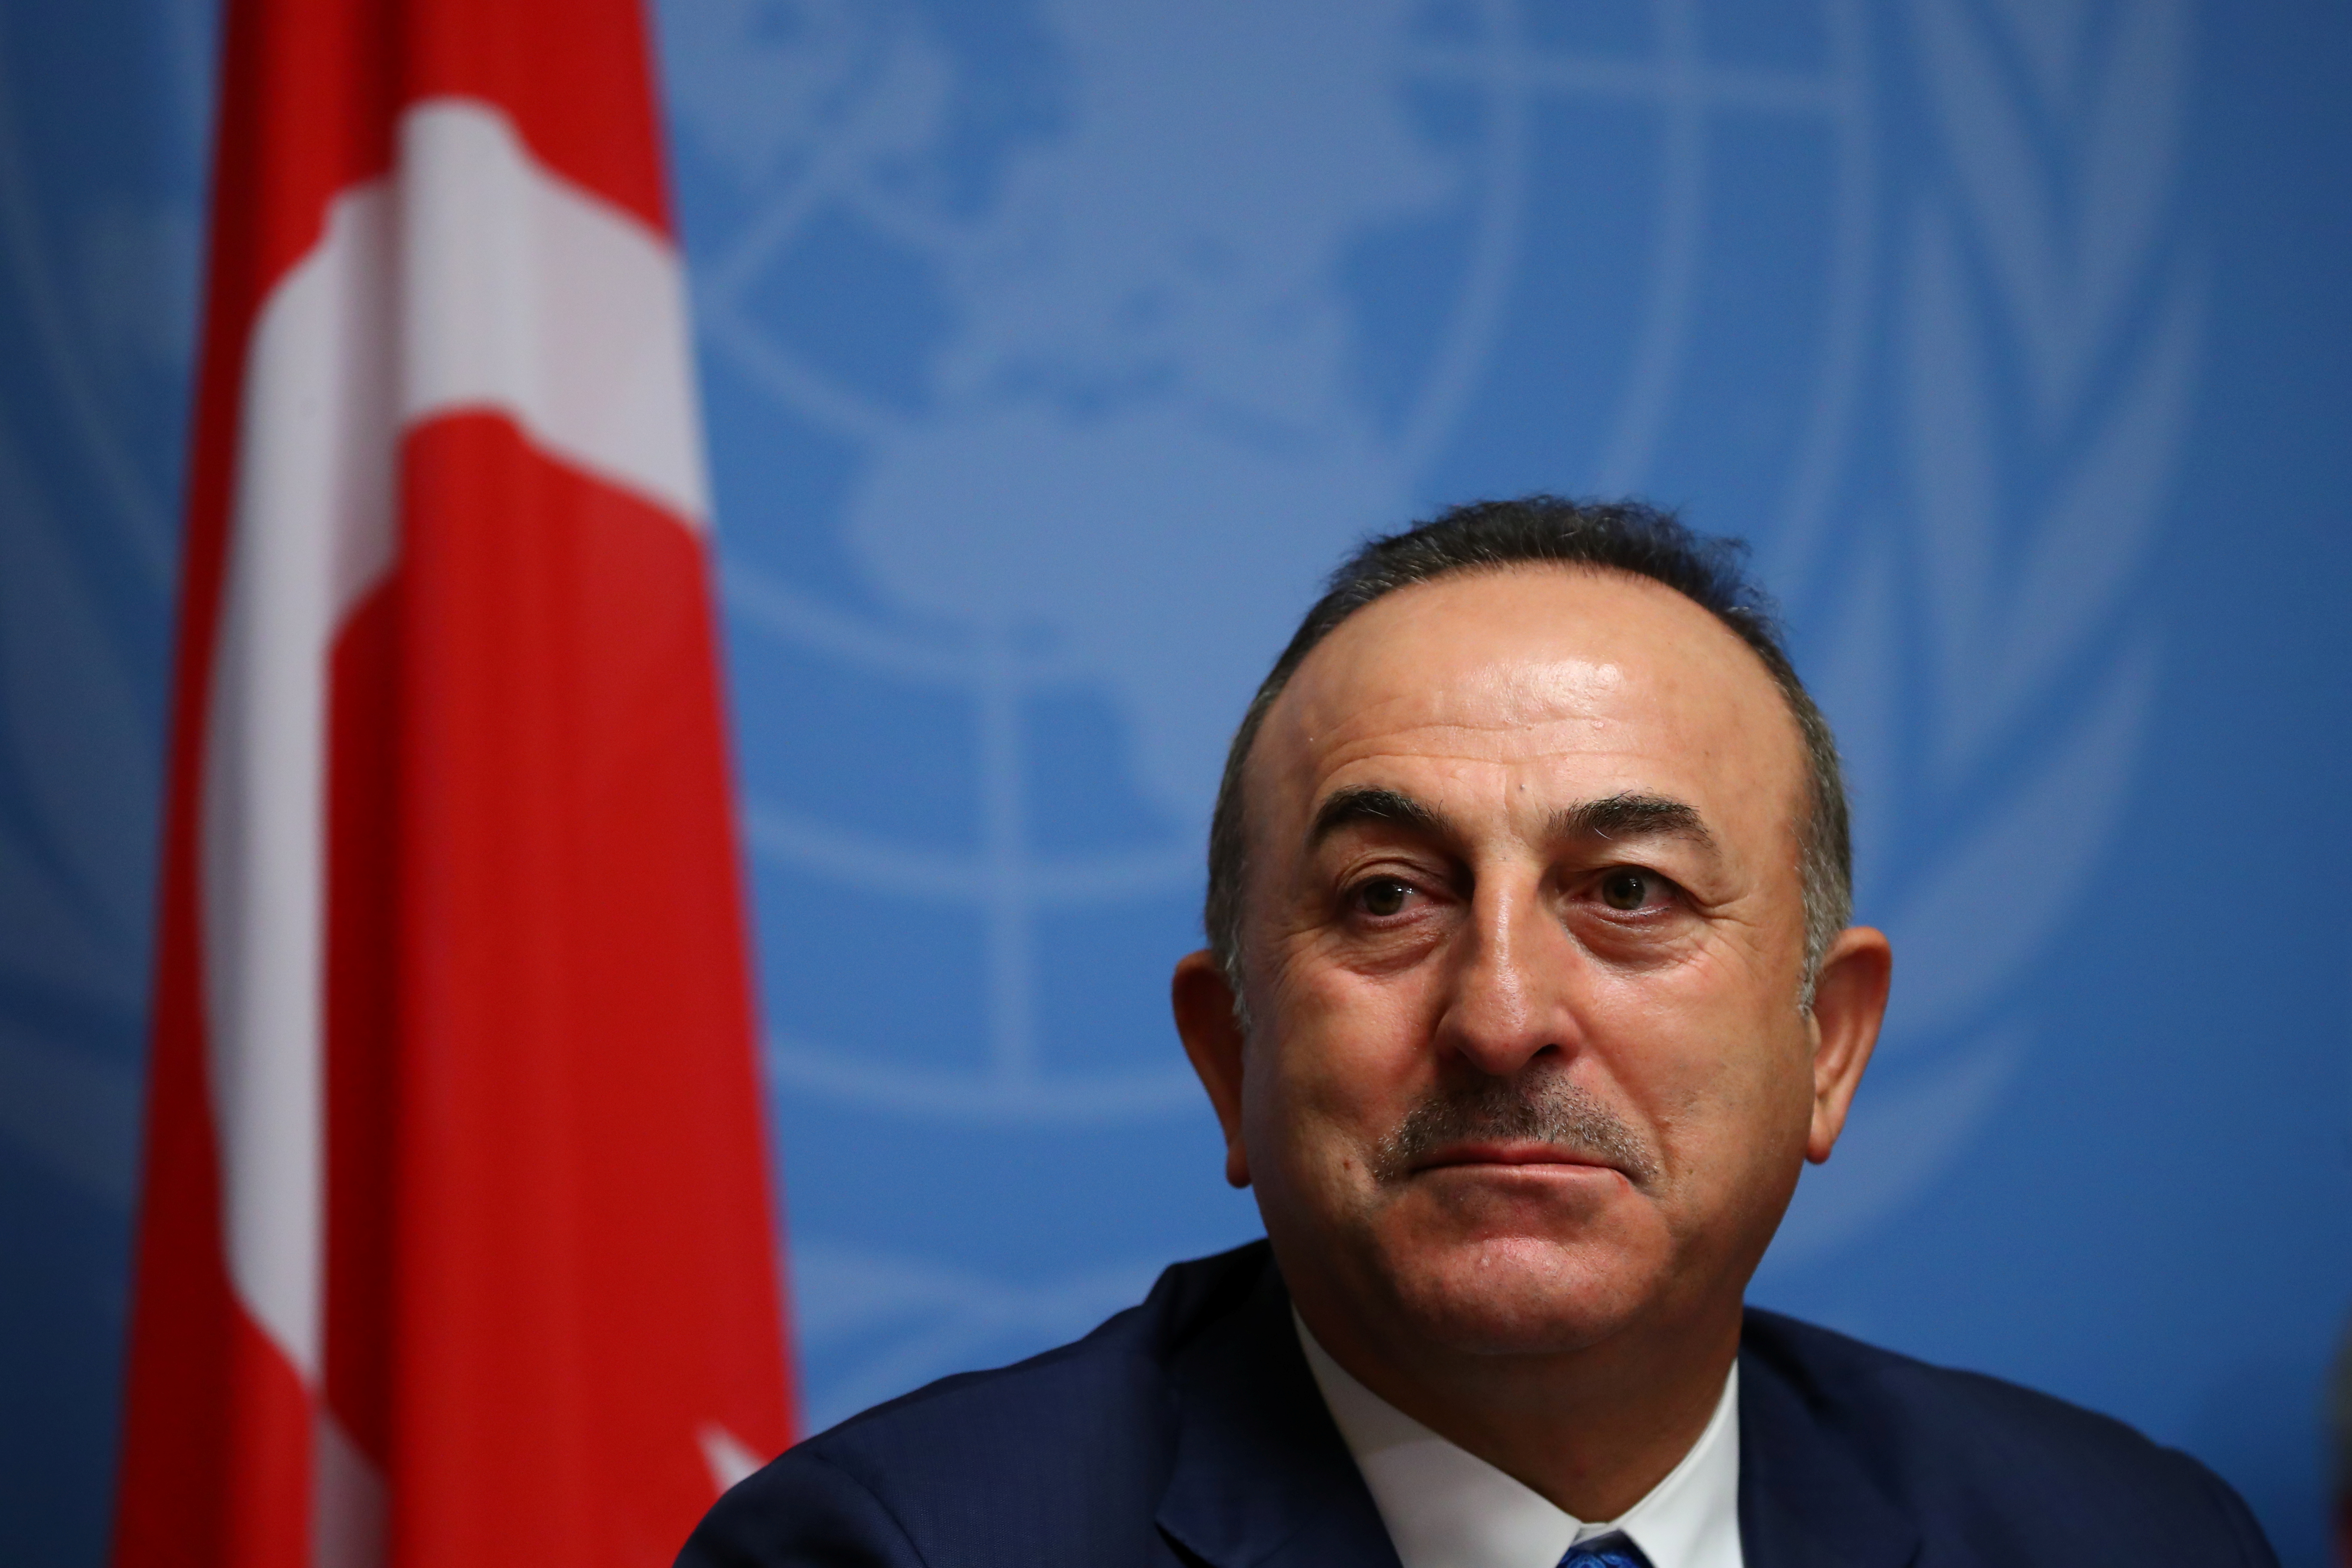 Turkey's Foreign Minister Mevlut Cavusoglu attends a news conference, a day ahead of the first meeting of the new Syrian Constitutional Committee at the Untied Nations in Geneva, Switzerland, October 29, 2019. REUTERS/Denis Balibouse